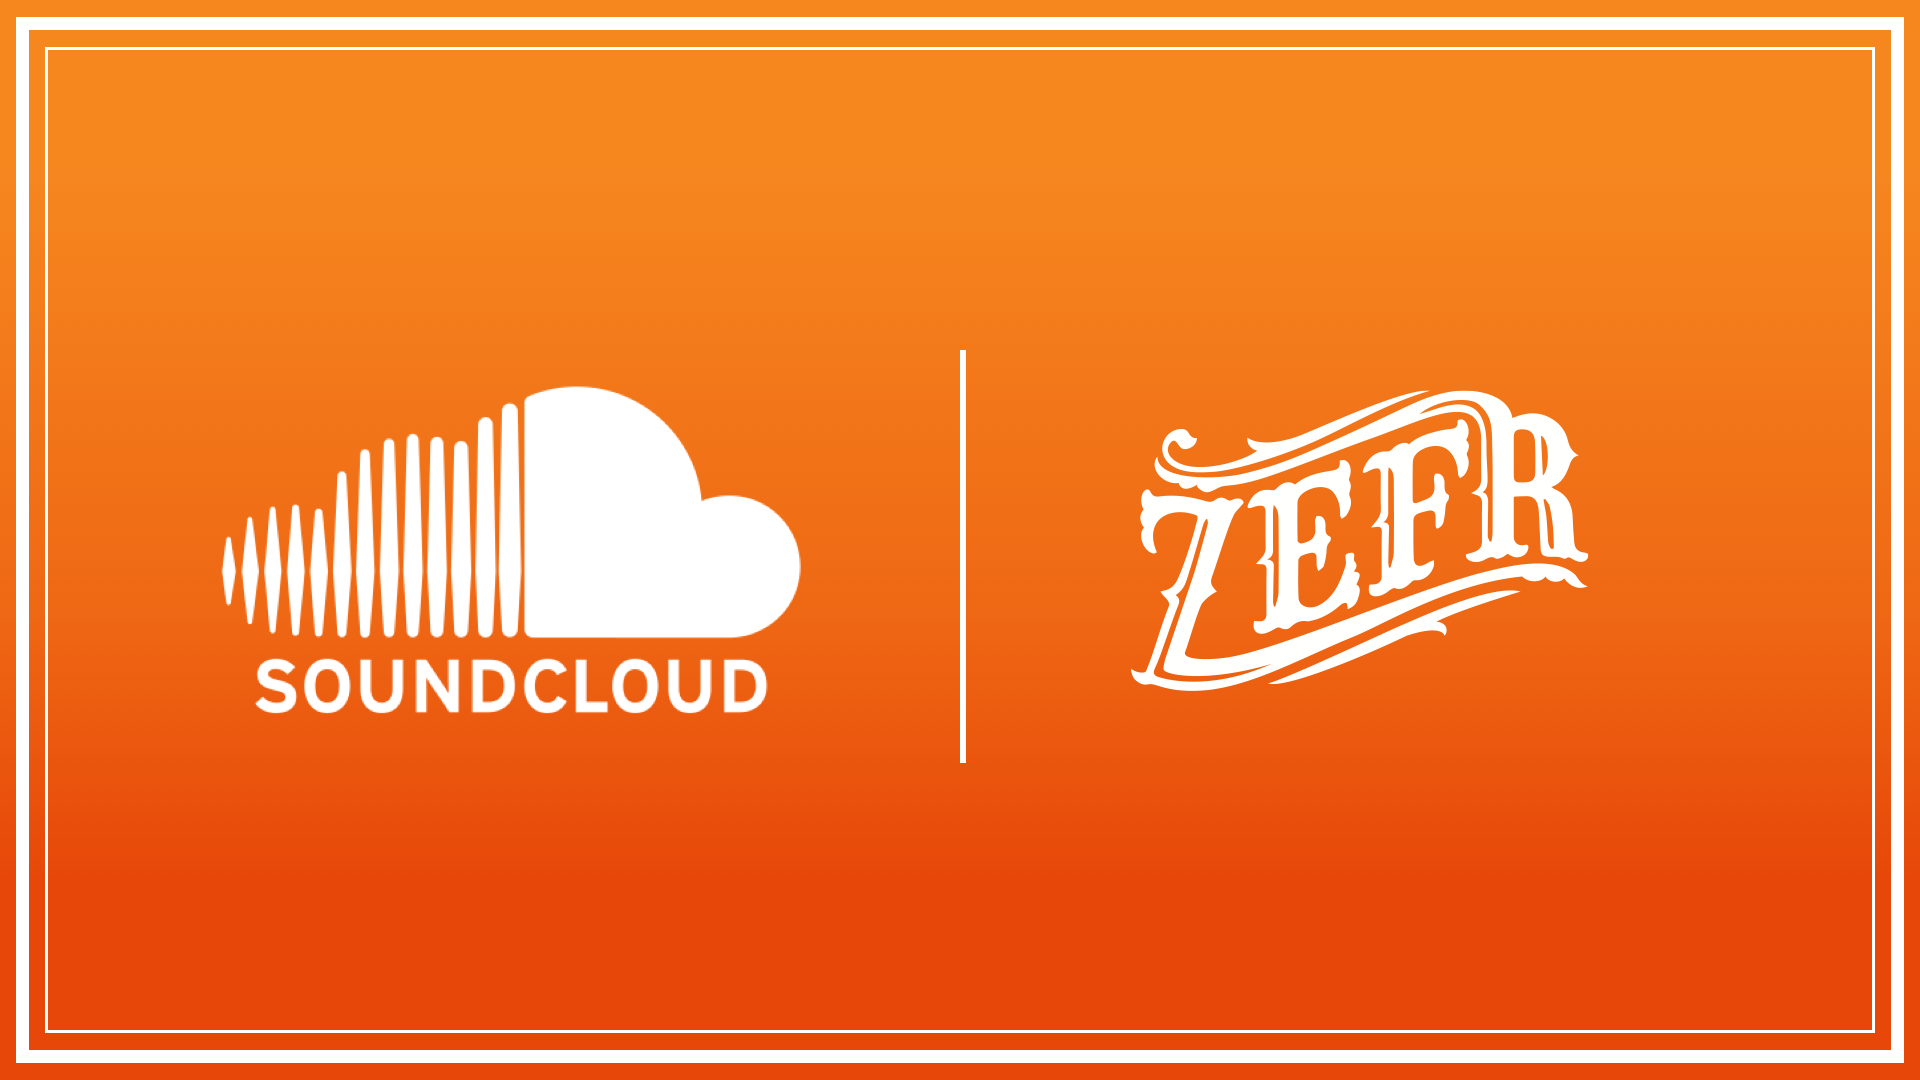 Soundcloud Zefr